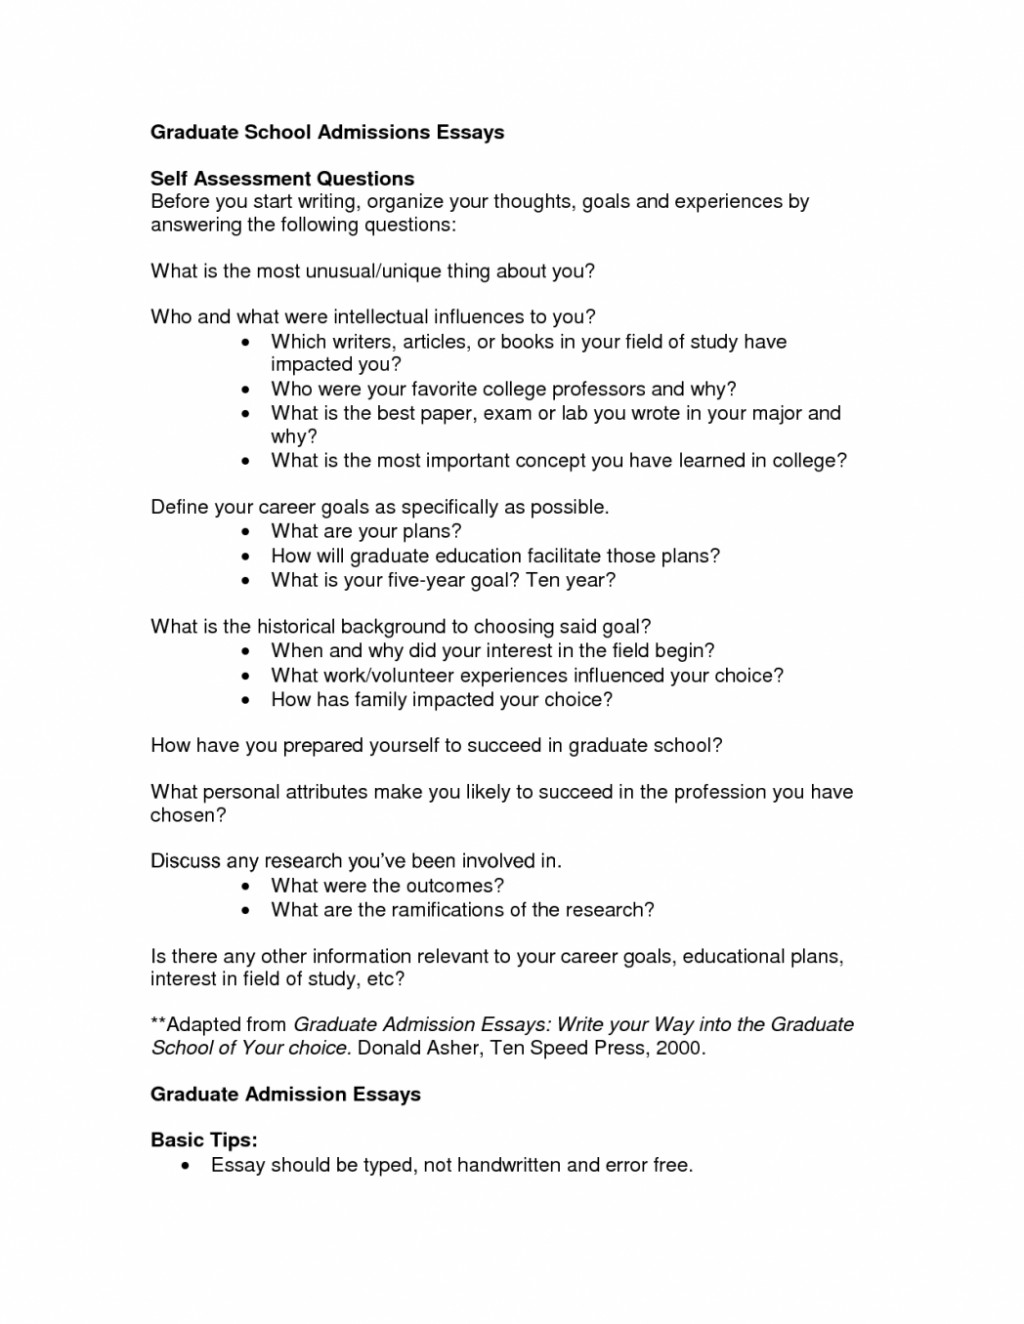 011 Essay Example Do Myaduate Essays Custom Writing Company An For School Application Gp7xjad Personal Sample Social Work Autobiographical College Psychology 1048x1356 Surprising Graduate Admission Masters How To Write Degree In Nursing Large